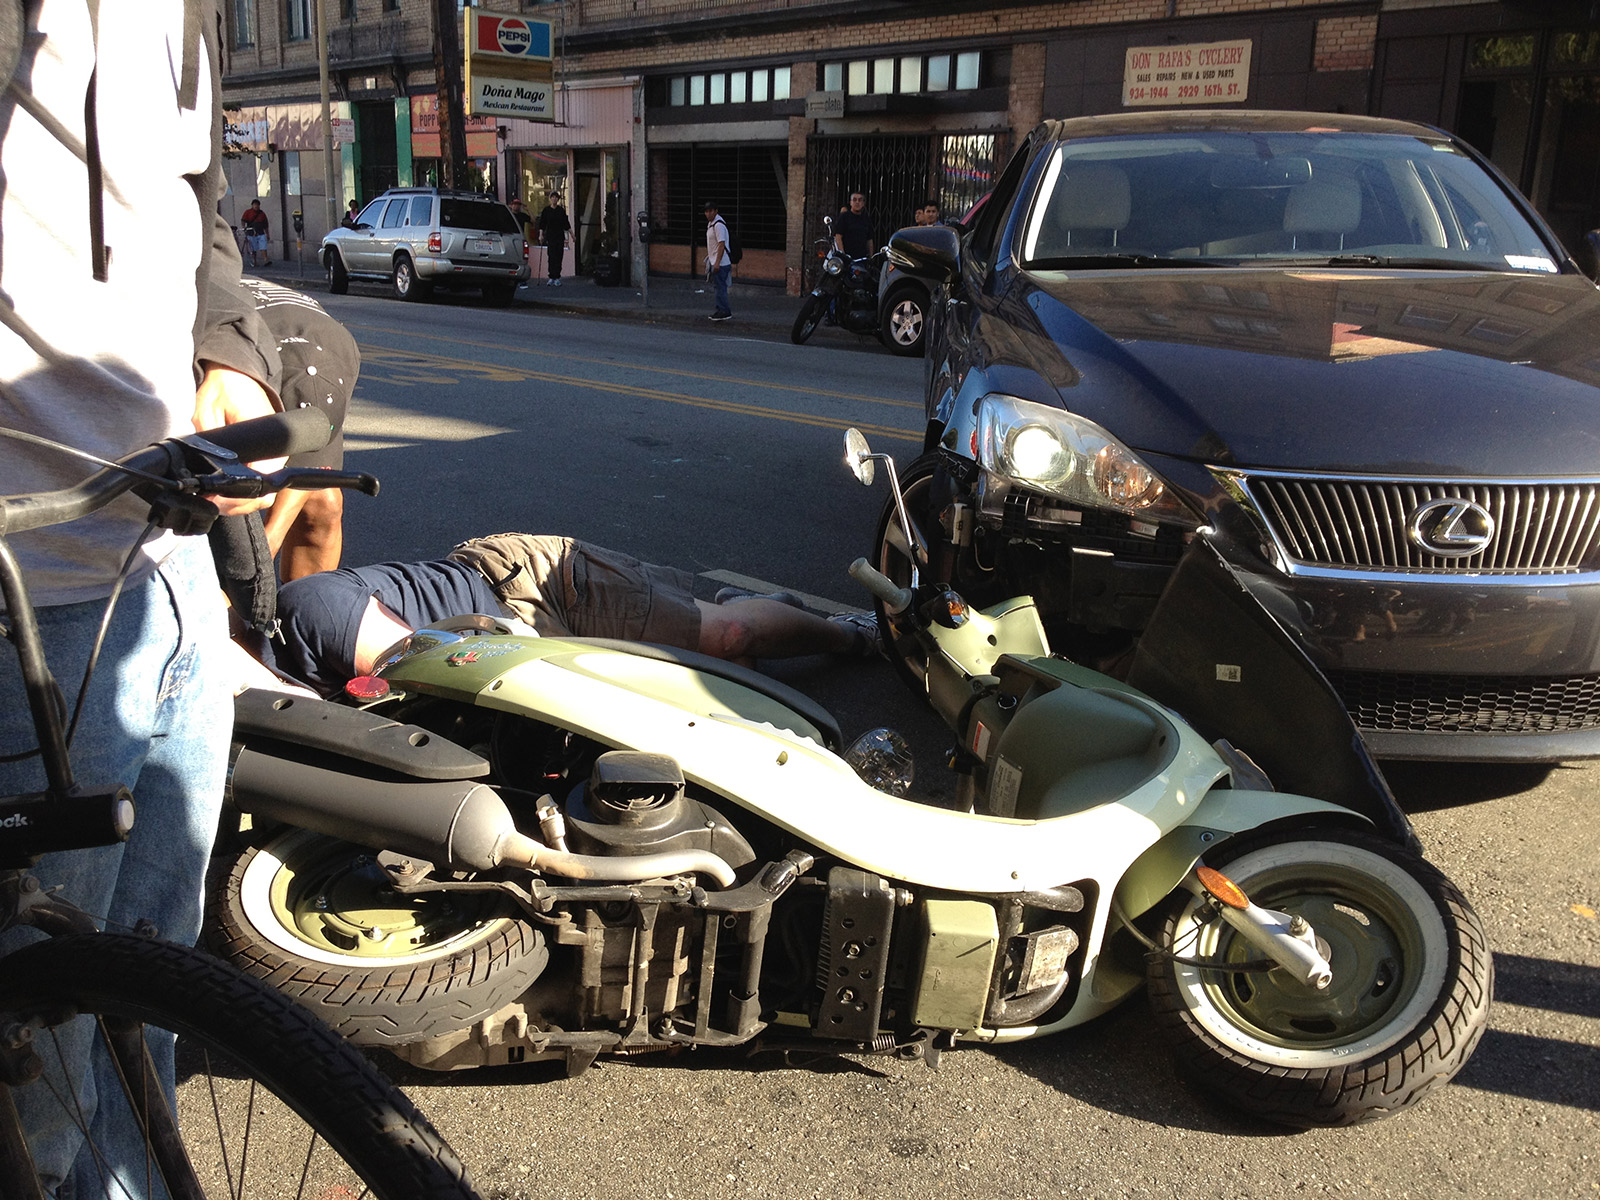 Scooter and Car Collide on 16th Street